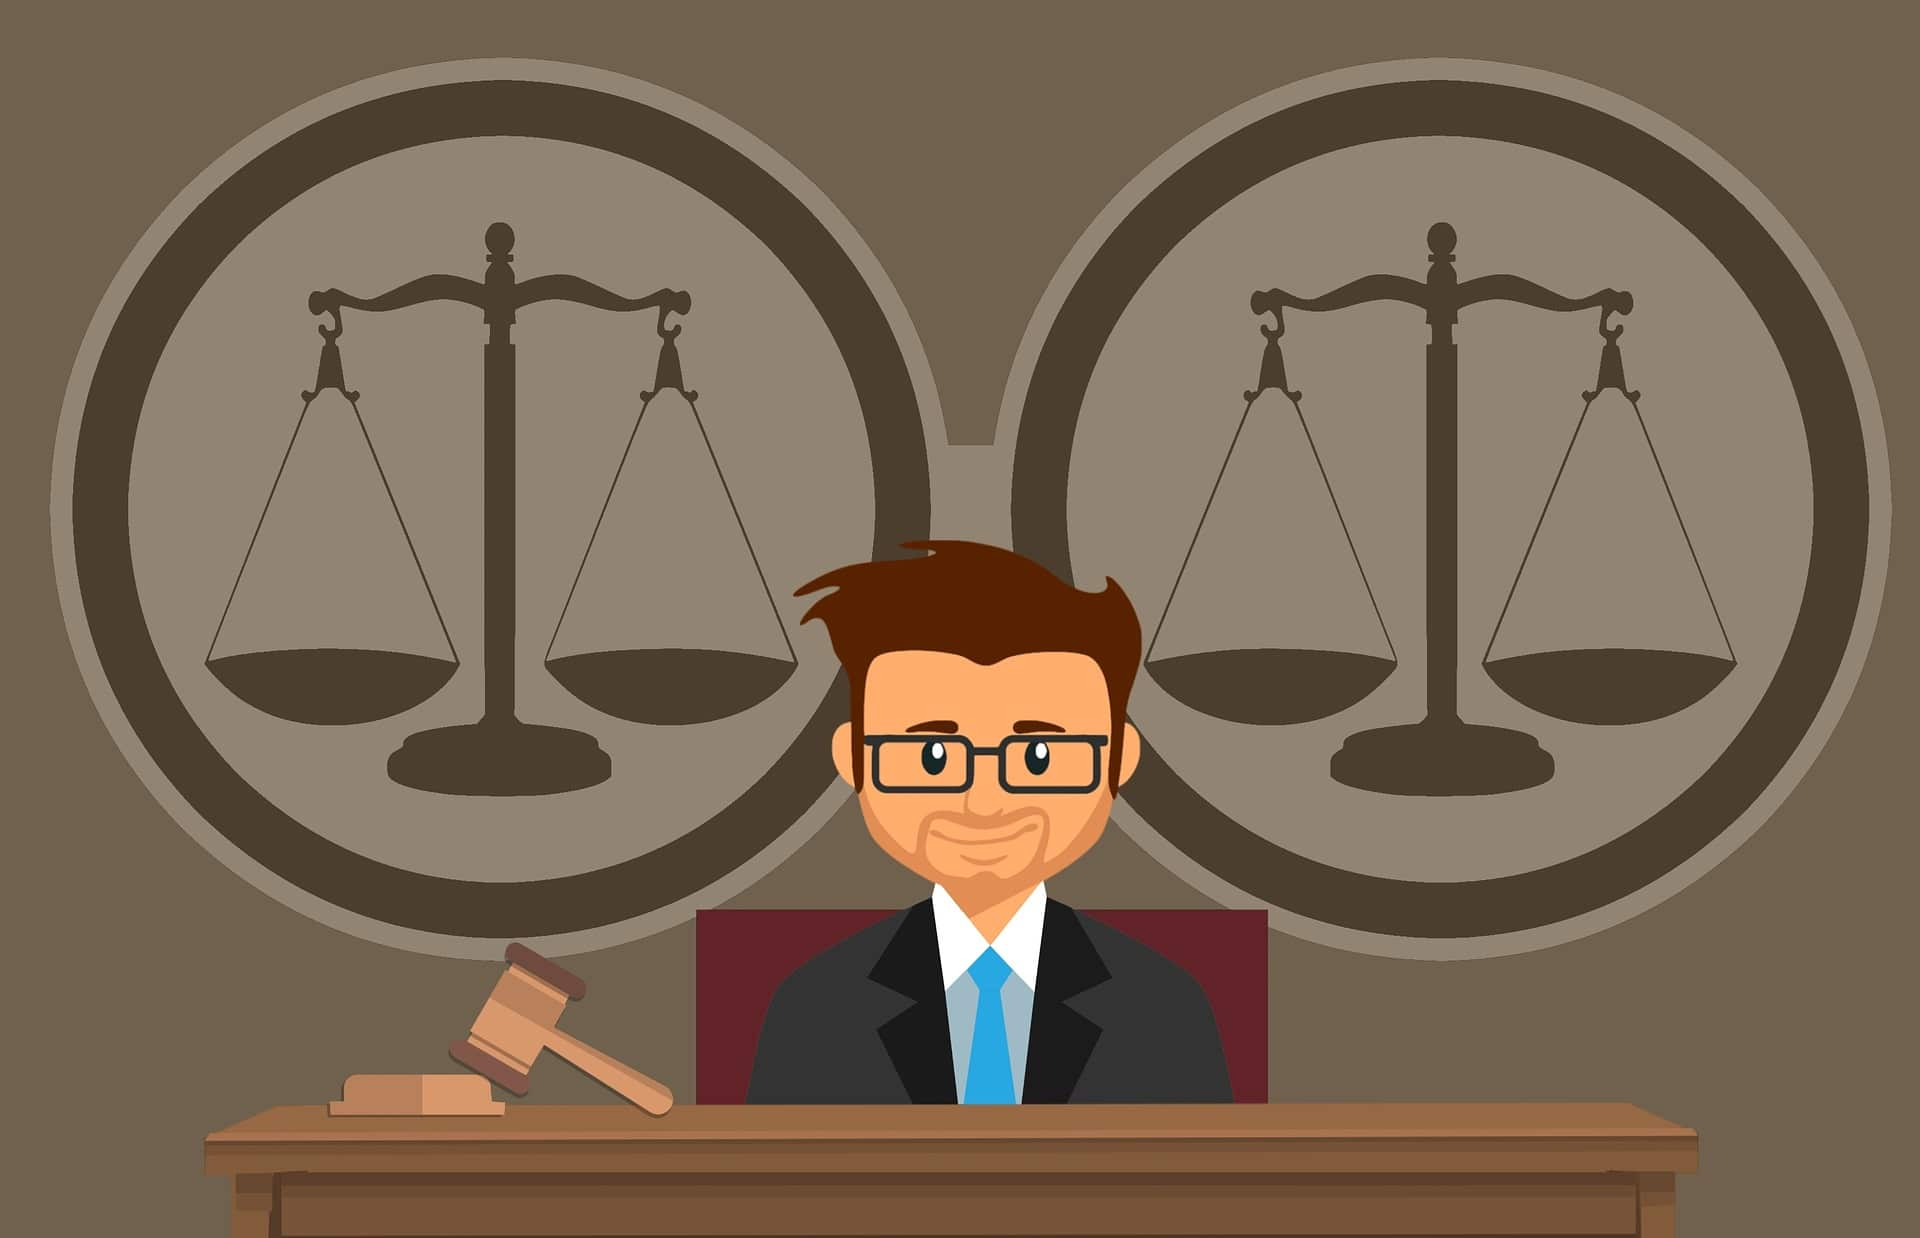 withdraw a guilty plea - cartoon of judge and gavel